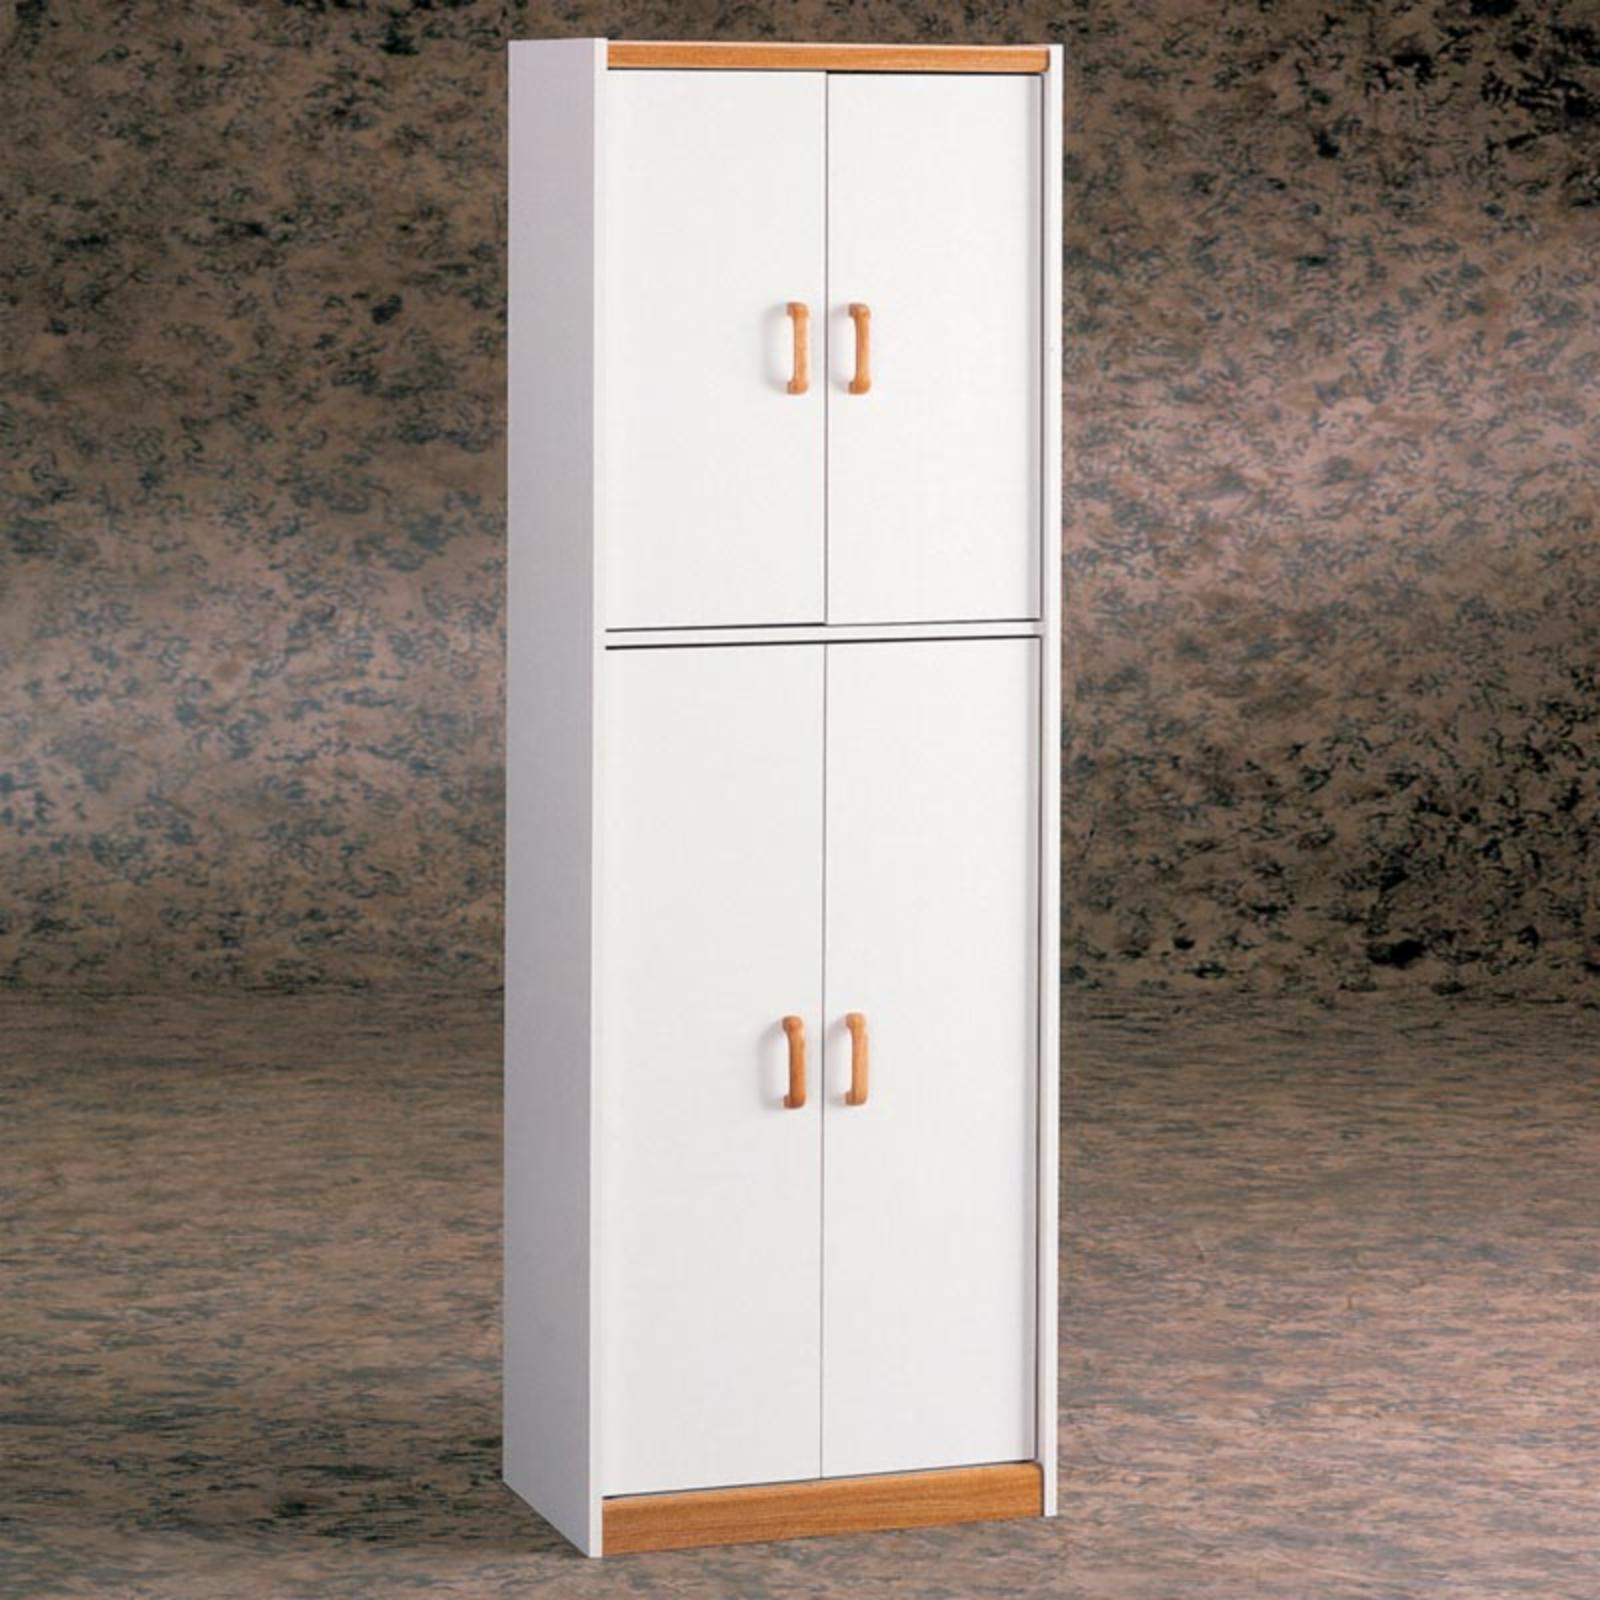 White Deluxe Four Door Pantry Cabinet - 4506